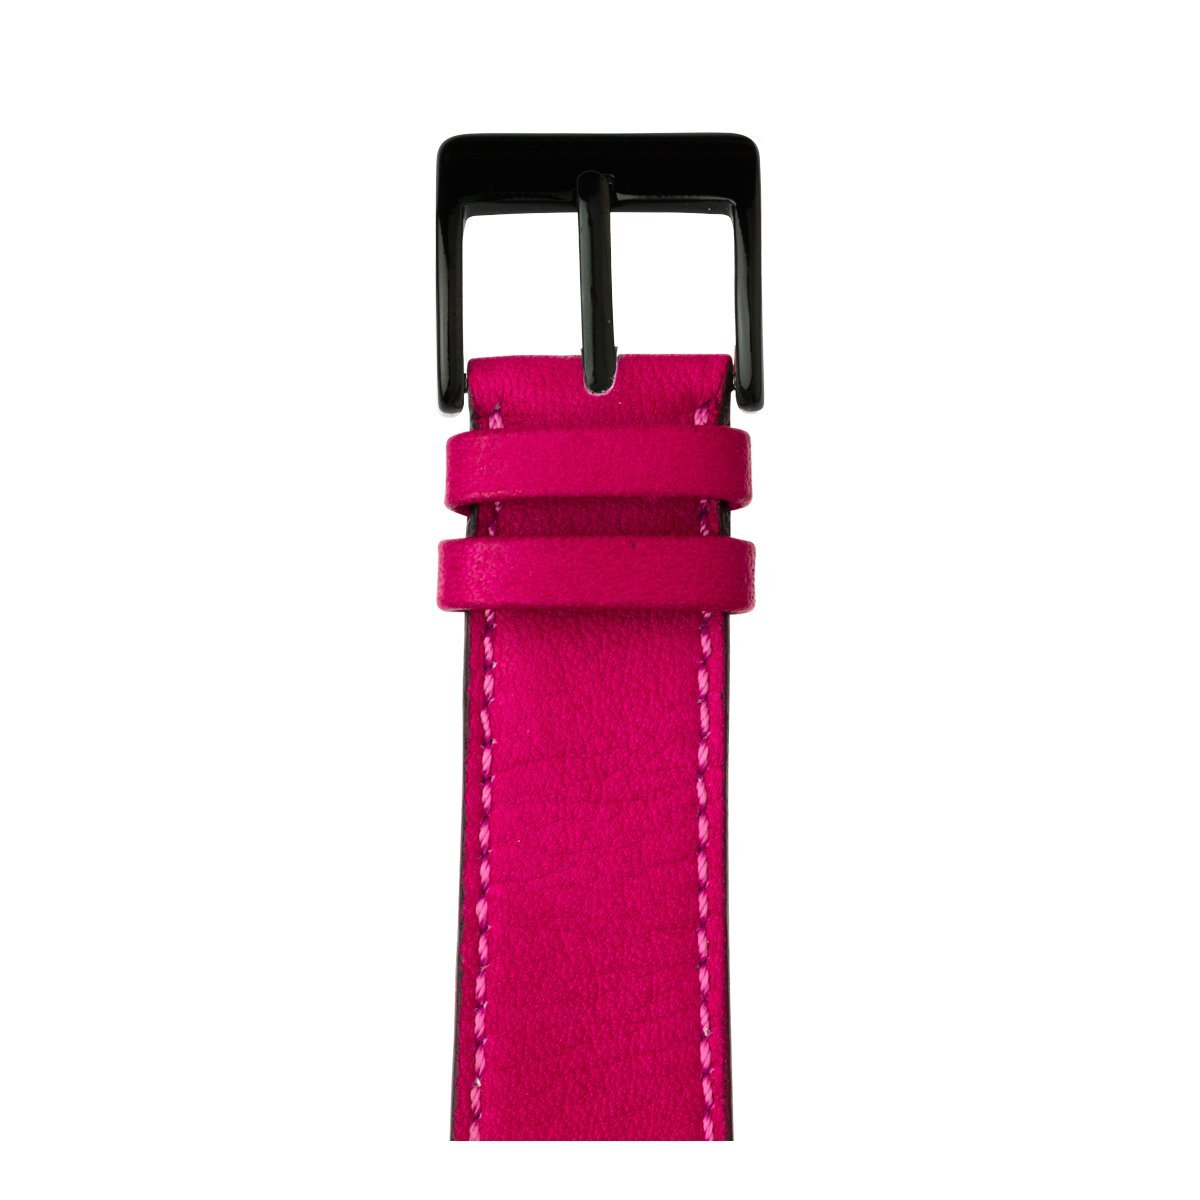 Roobaya | Premium Sauvage Leather Apple Watch Band in Pink | Includes Adapters matching the Color of the Apple Watch, Case Color:Space Black Stainless Steel, Size:38 mm